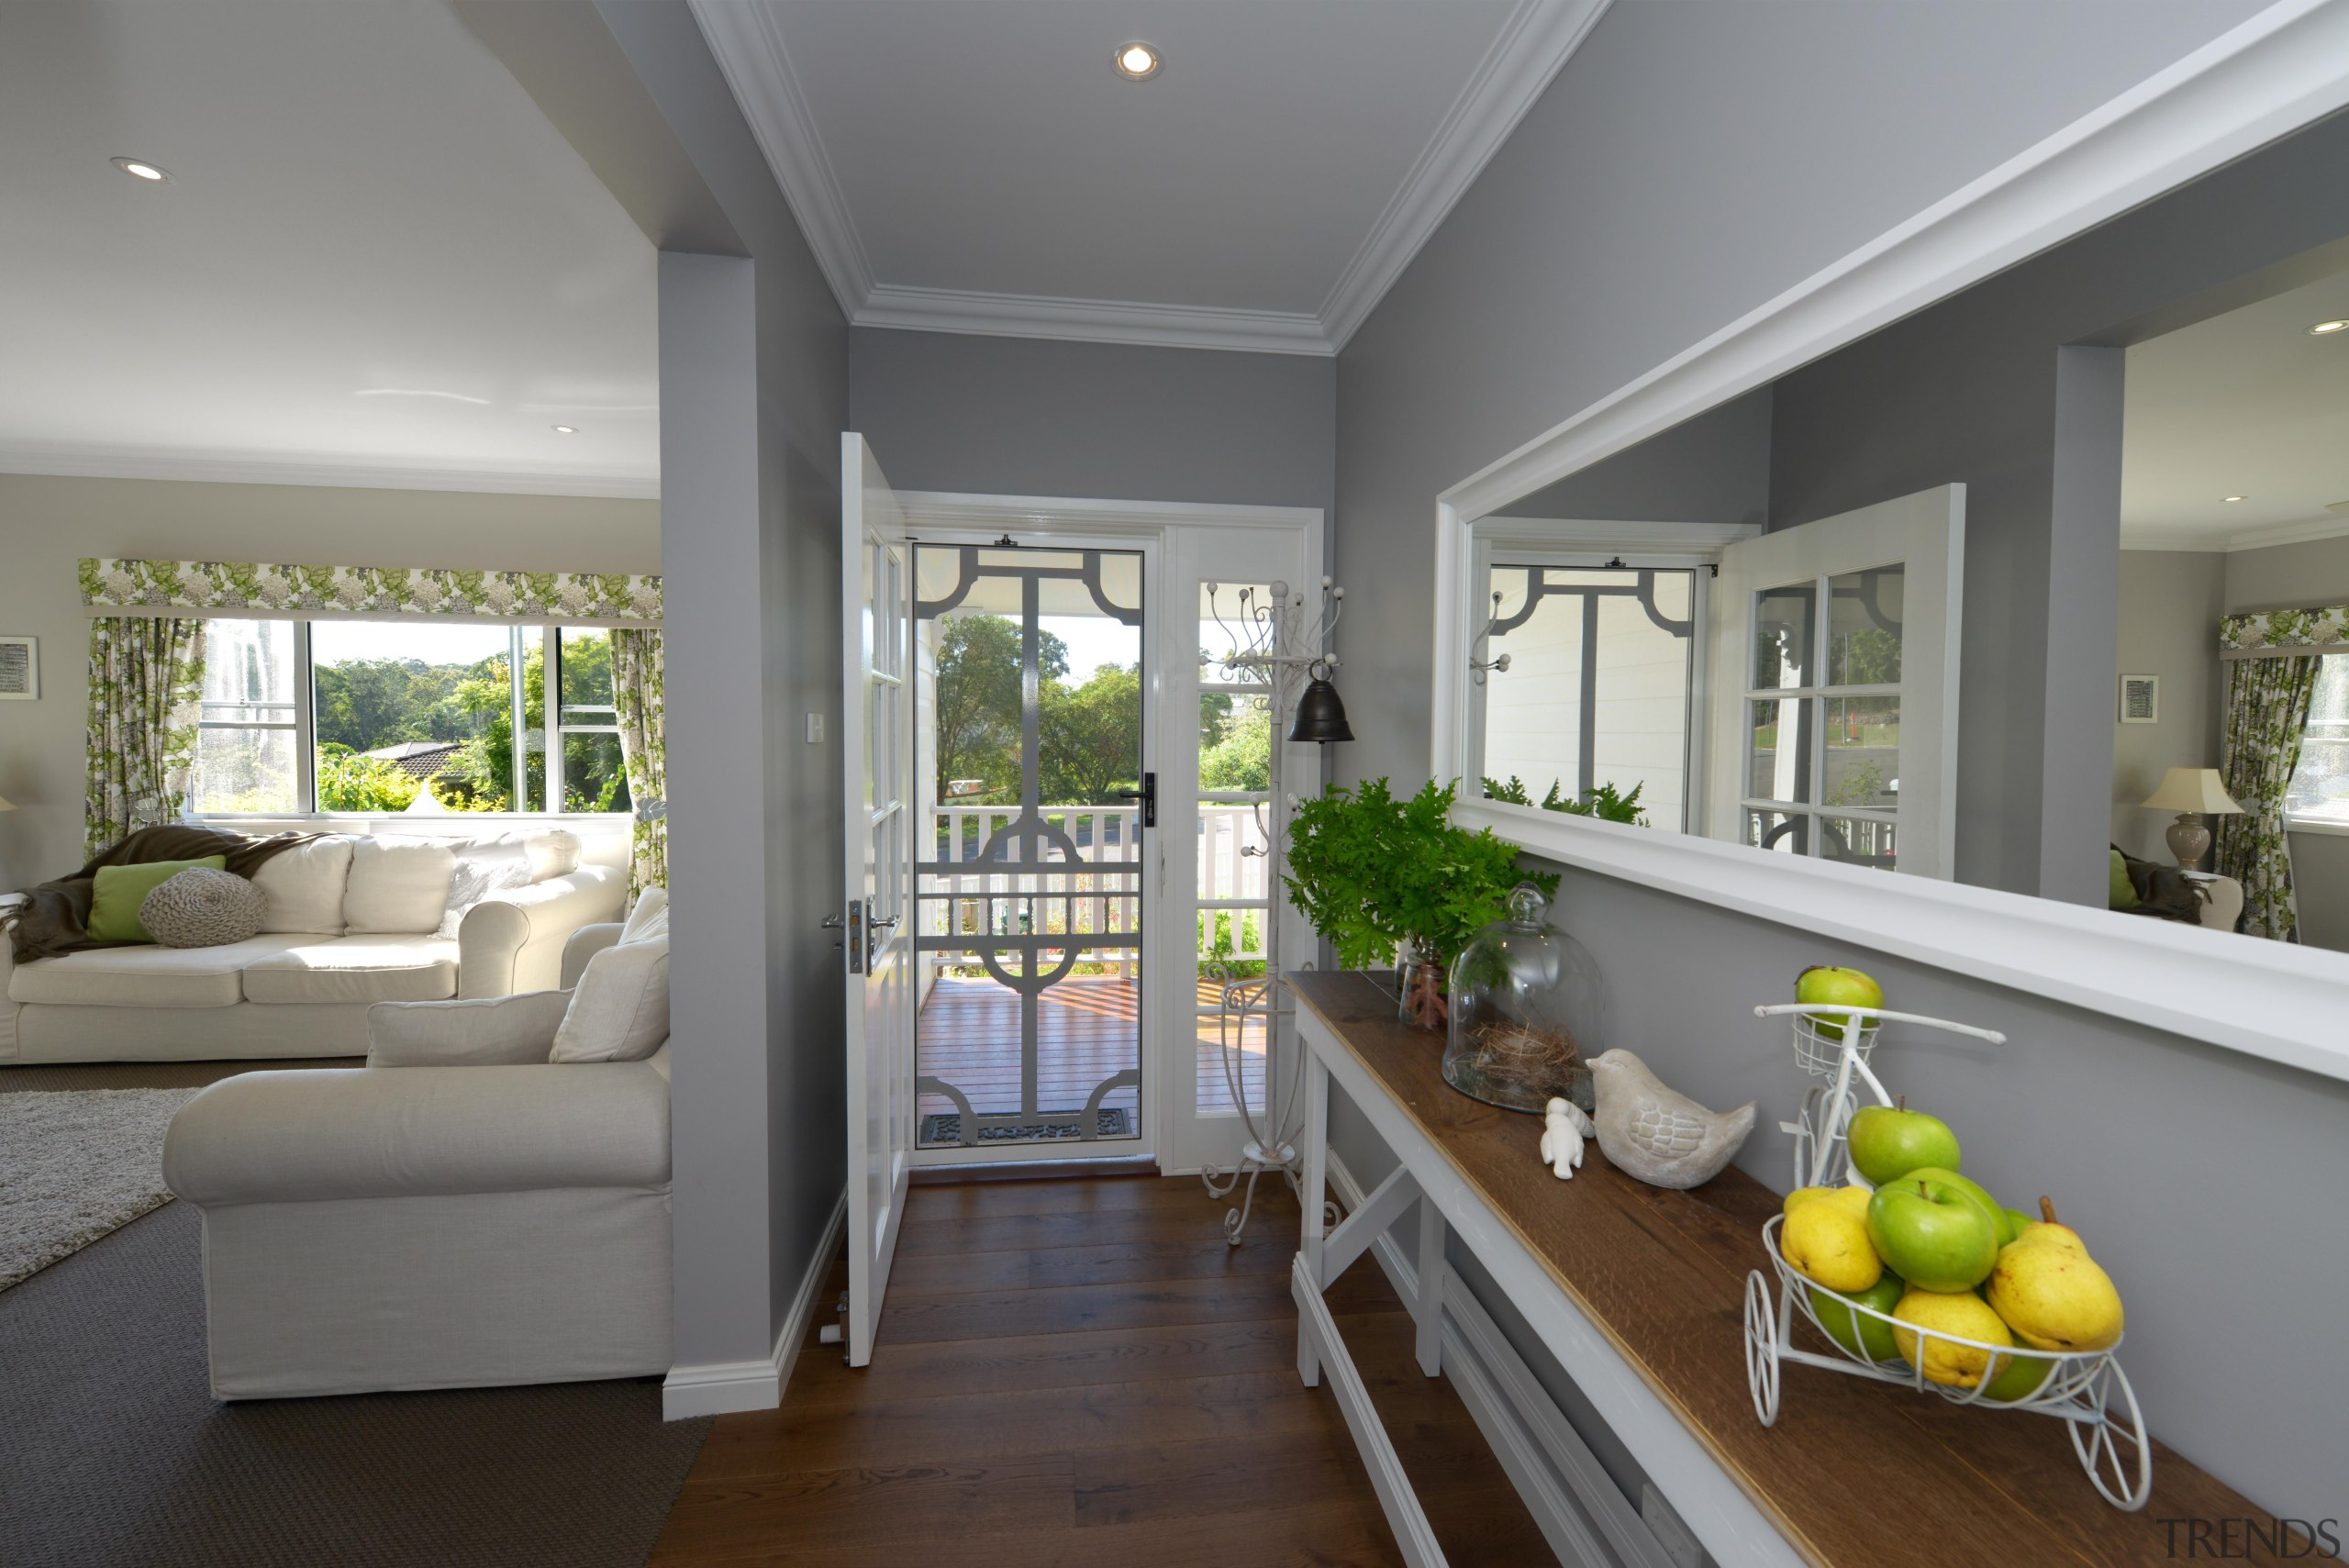 At Manor we believe in harmony - harmony home, house, interior design, living room, real estate, window, gray